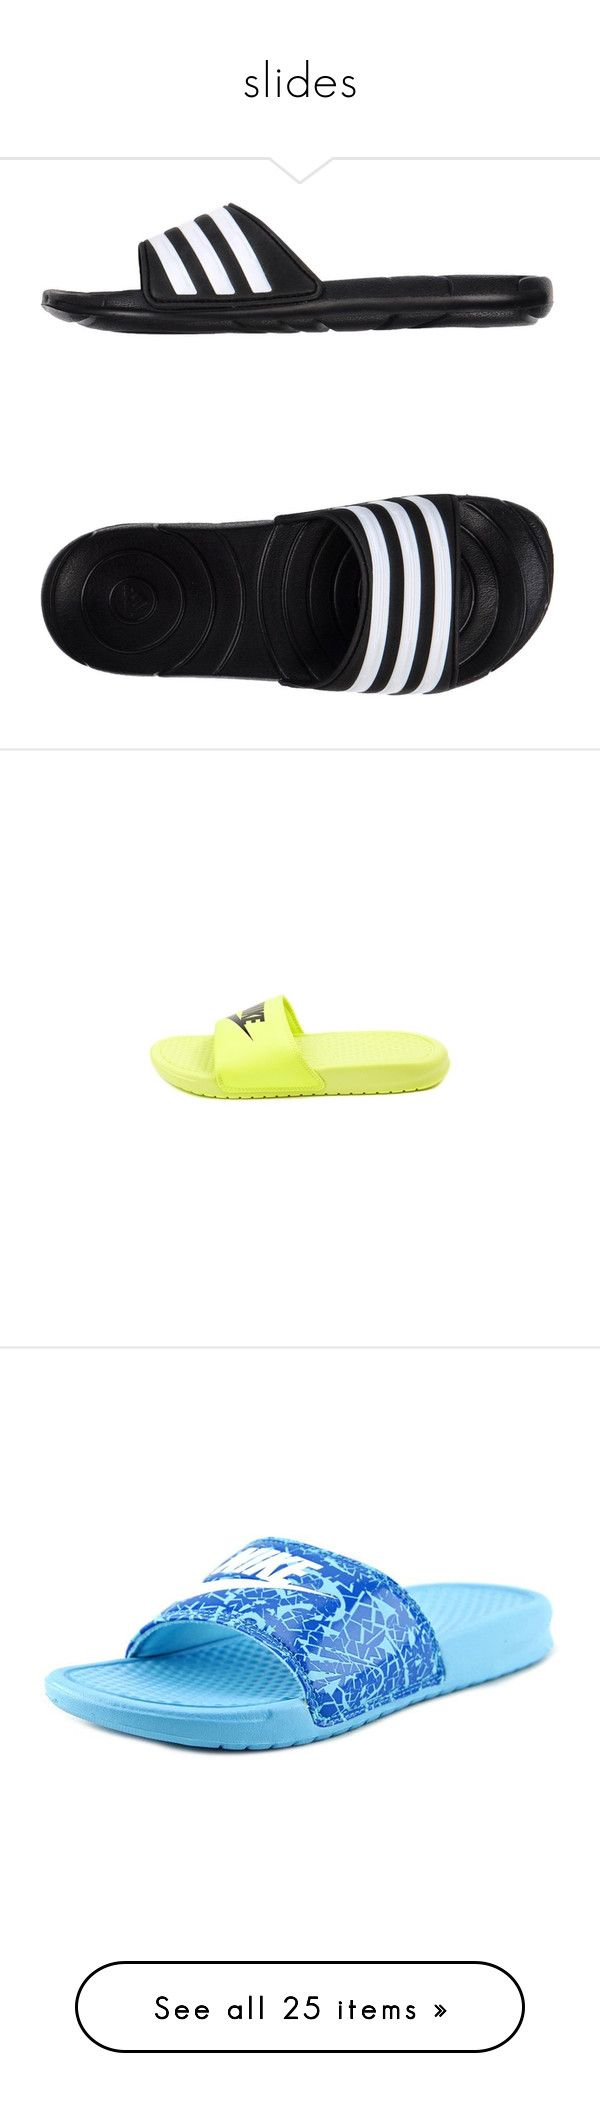 """""""slides"""" by nnenna21 ❤ liked on Polyvore featuring shoes, sandals, black, rubber sandals, striped shoes, flat sandals, black rubber shoes, rubber shoes, nike and shoes."""